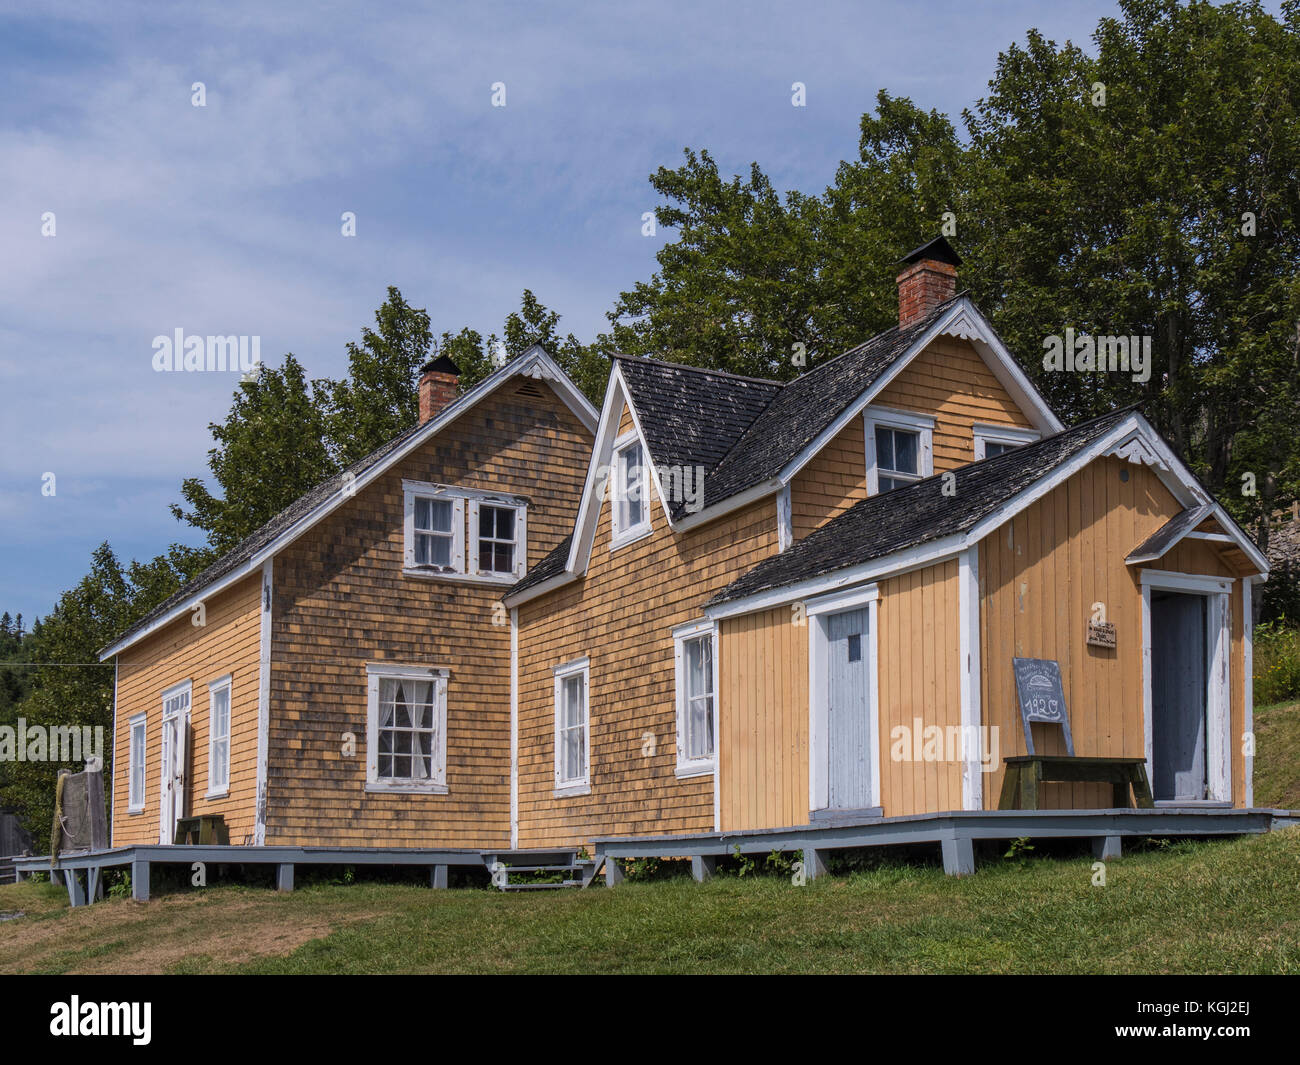 Home at L'Anse Blanchette, home owned by Xavier Blanchette, Forillon National Park, Gaspe Peninsula, Canada. - Stock Image